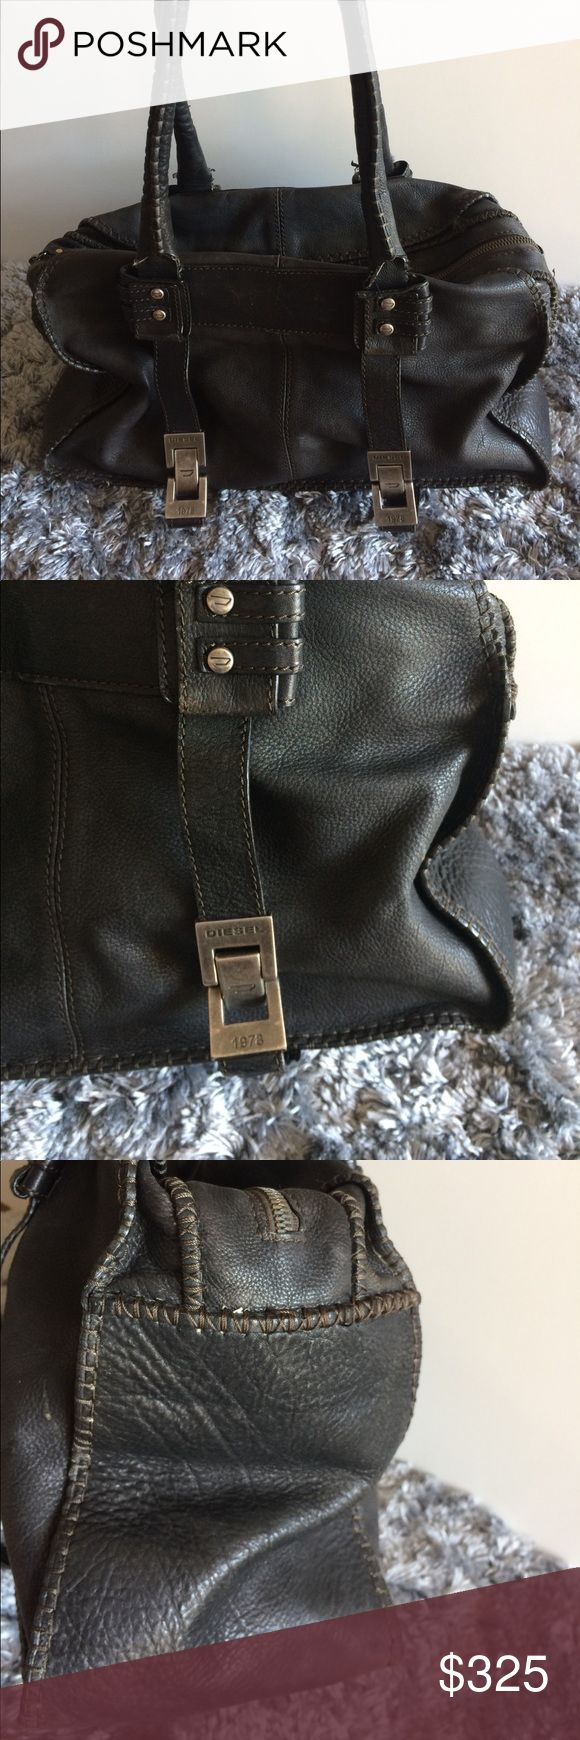 Large blk diesel purse Smells AMAZING!!!!! The leather is extremely soft. Sadly I lent it to a friend and it was returned with stains on the interior, I'm considering having it professionally cleaned. The exterior has some loose threads on one side and one handle needs to have a small section of leather repaired.  I adore this bag even tho it needs a little tlc. Diesel Bags Satchels